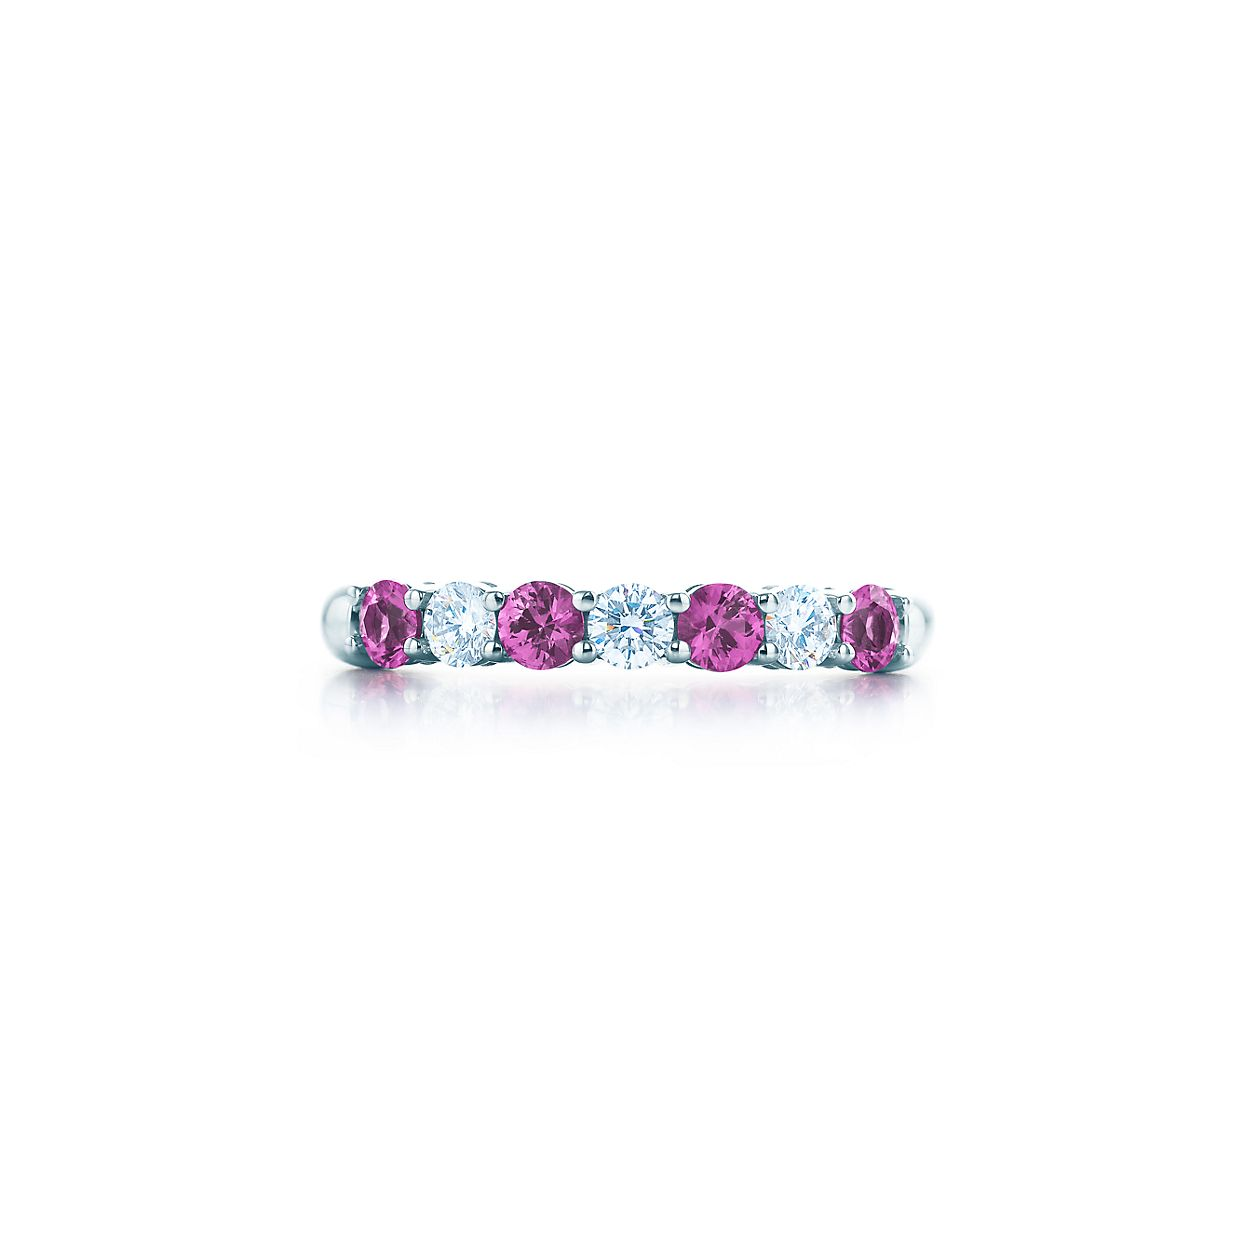 diamond simulated curved nscd jewelers the cushion cut pink sapphire city port w rings halo ring center created tina engagement band